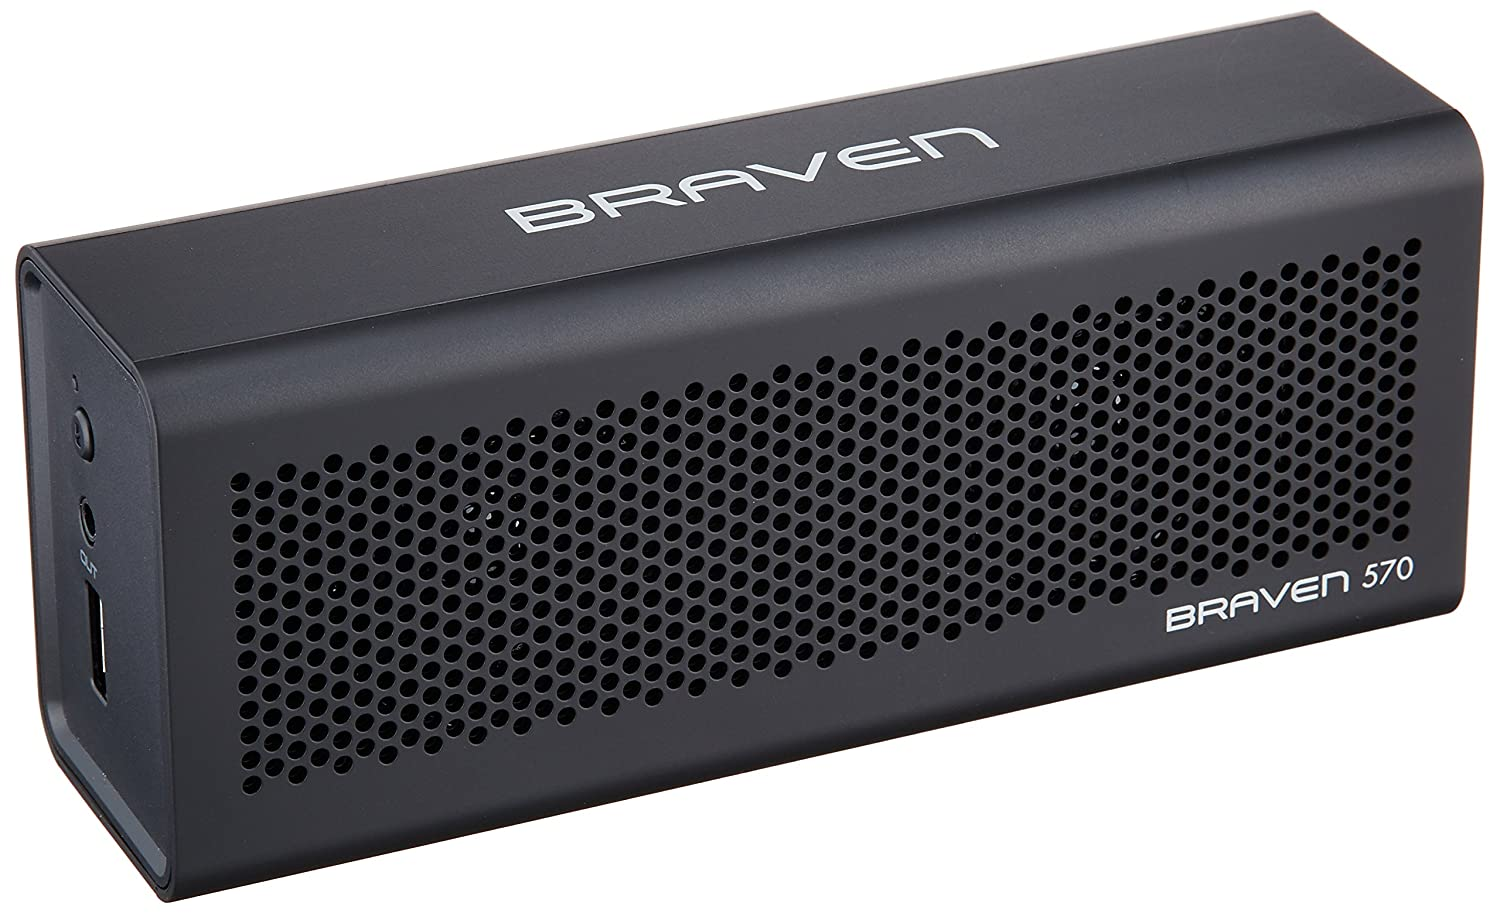 BRAVEN 570 Portable Wireless Bluetooth Speaker